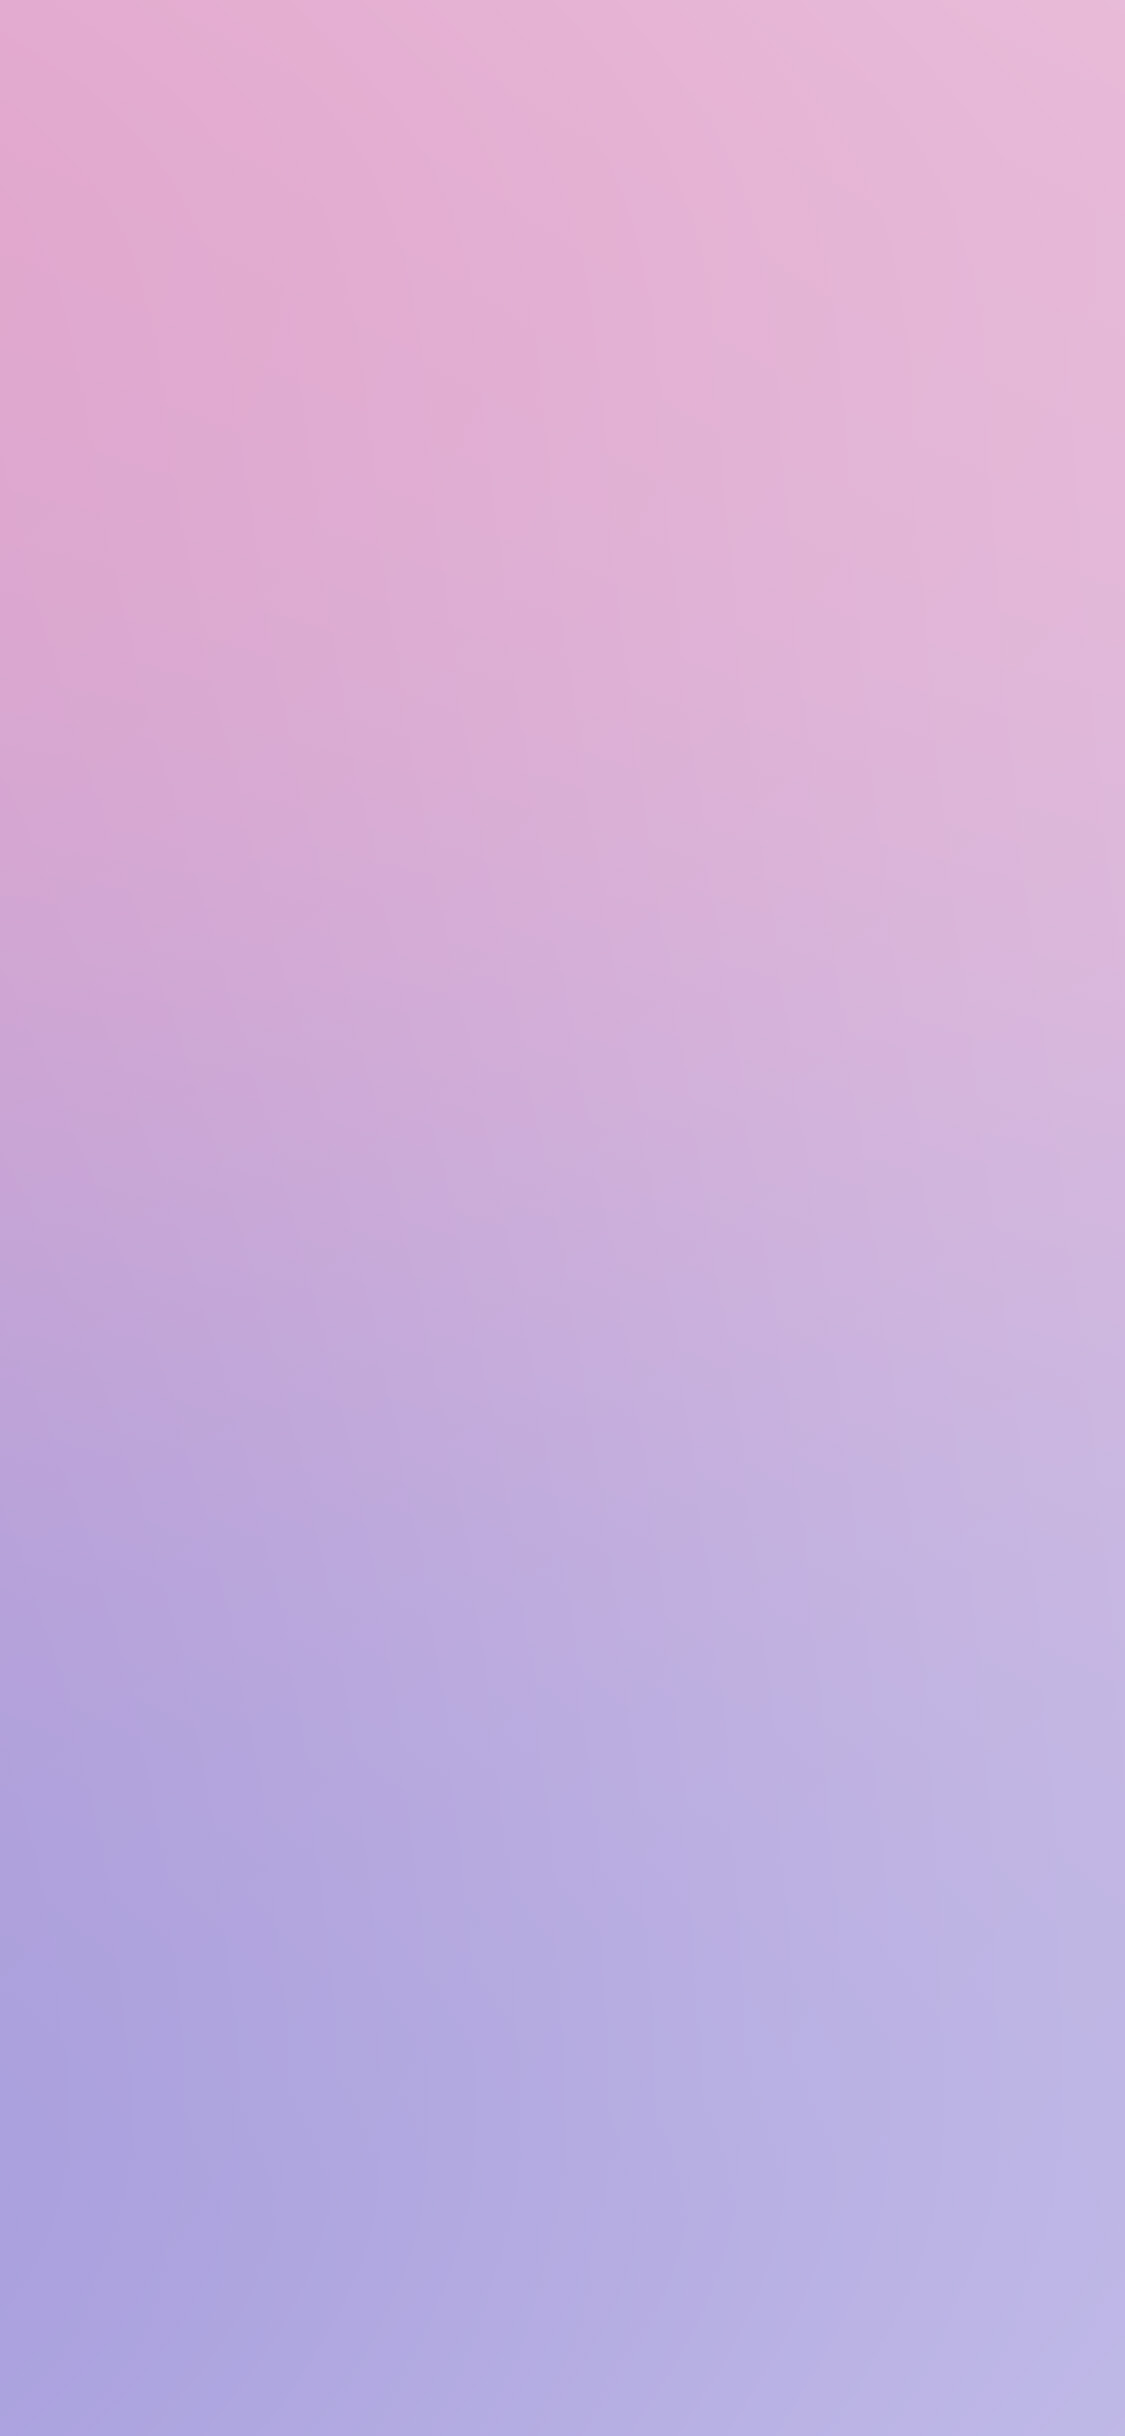 Pink And Purple Wallpaper Iphone ...